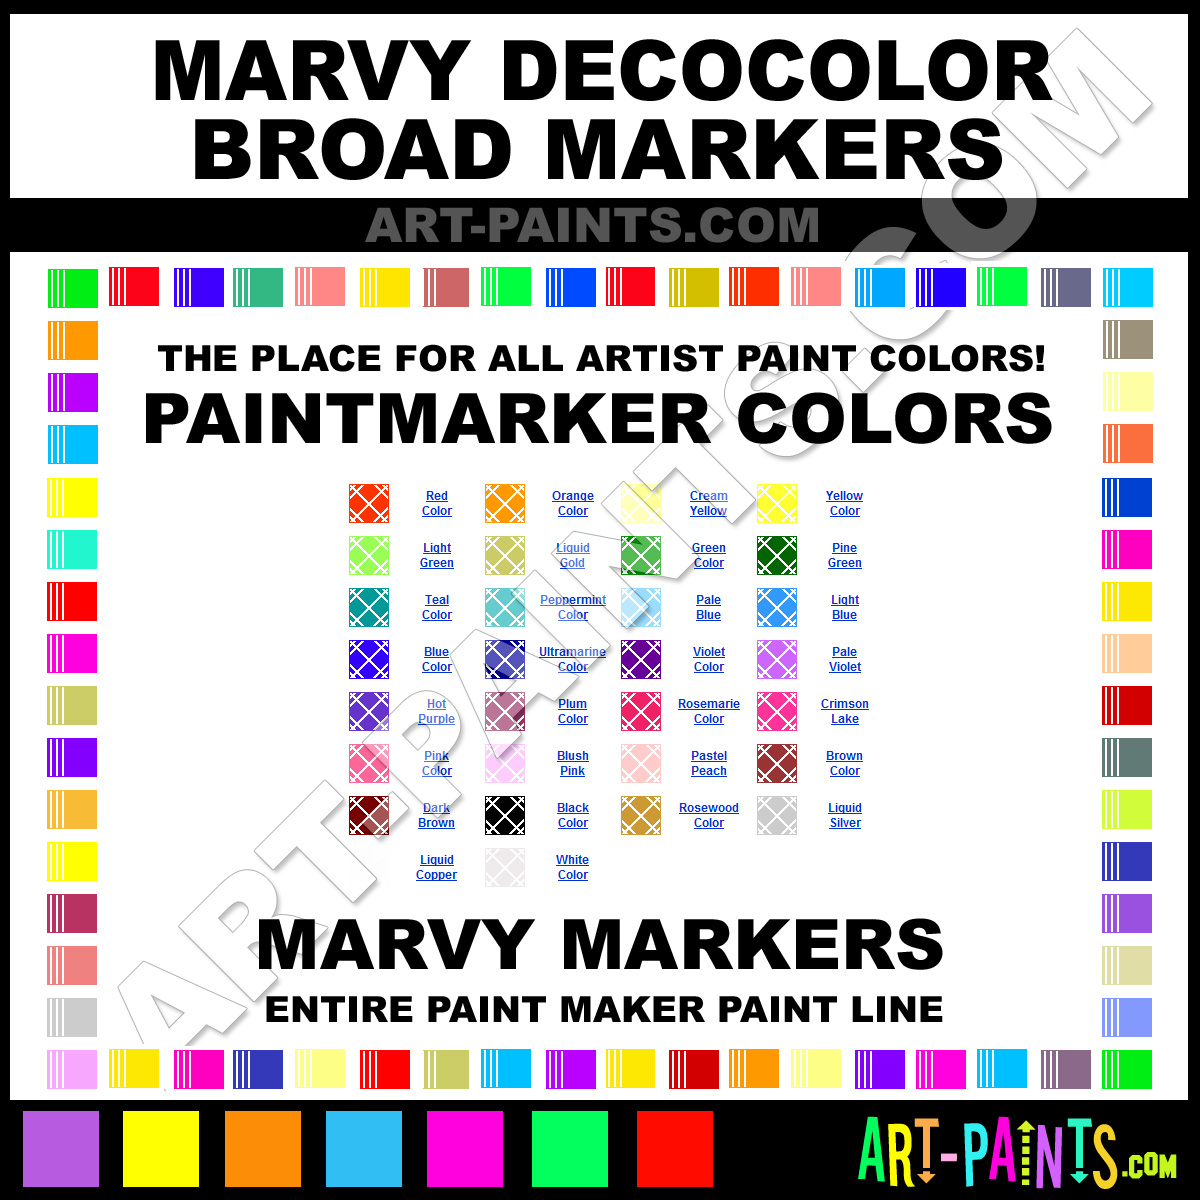 Marvy DecoColor Broad Markers - Marvy DecoColor Broad Paints